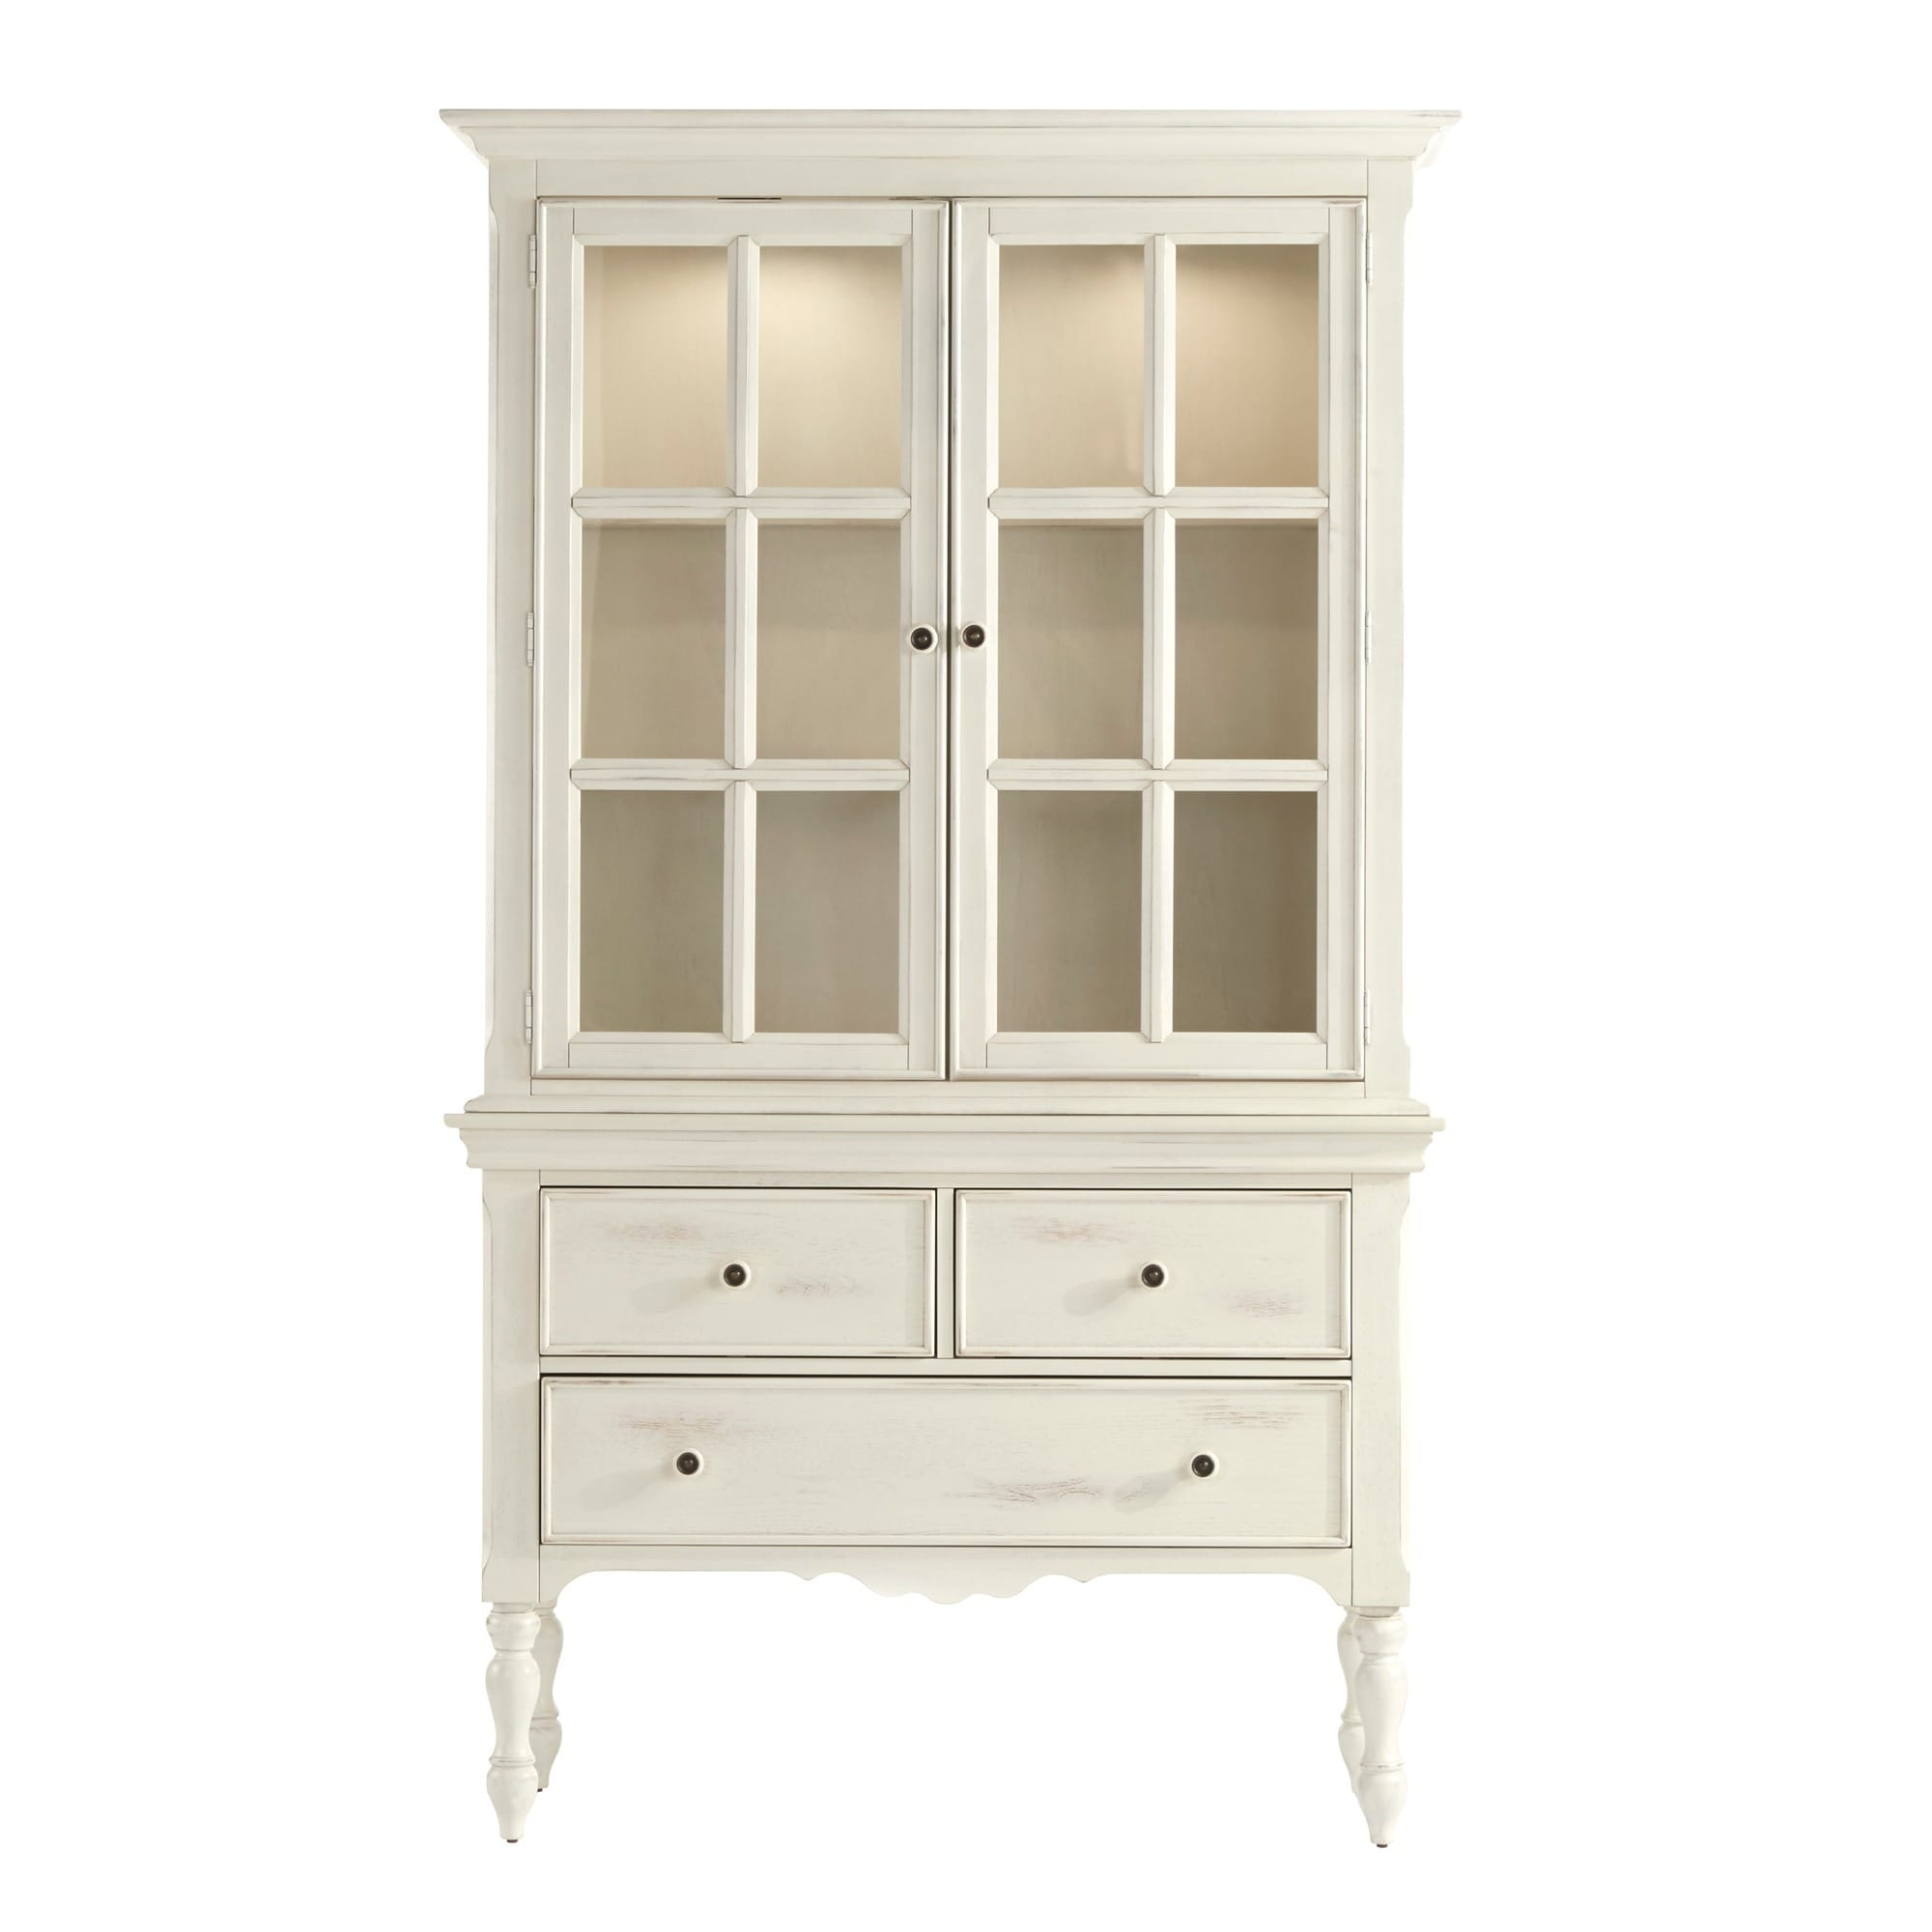 Antique White China Cabinets Easy Home Decorating Ideas